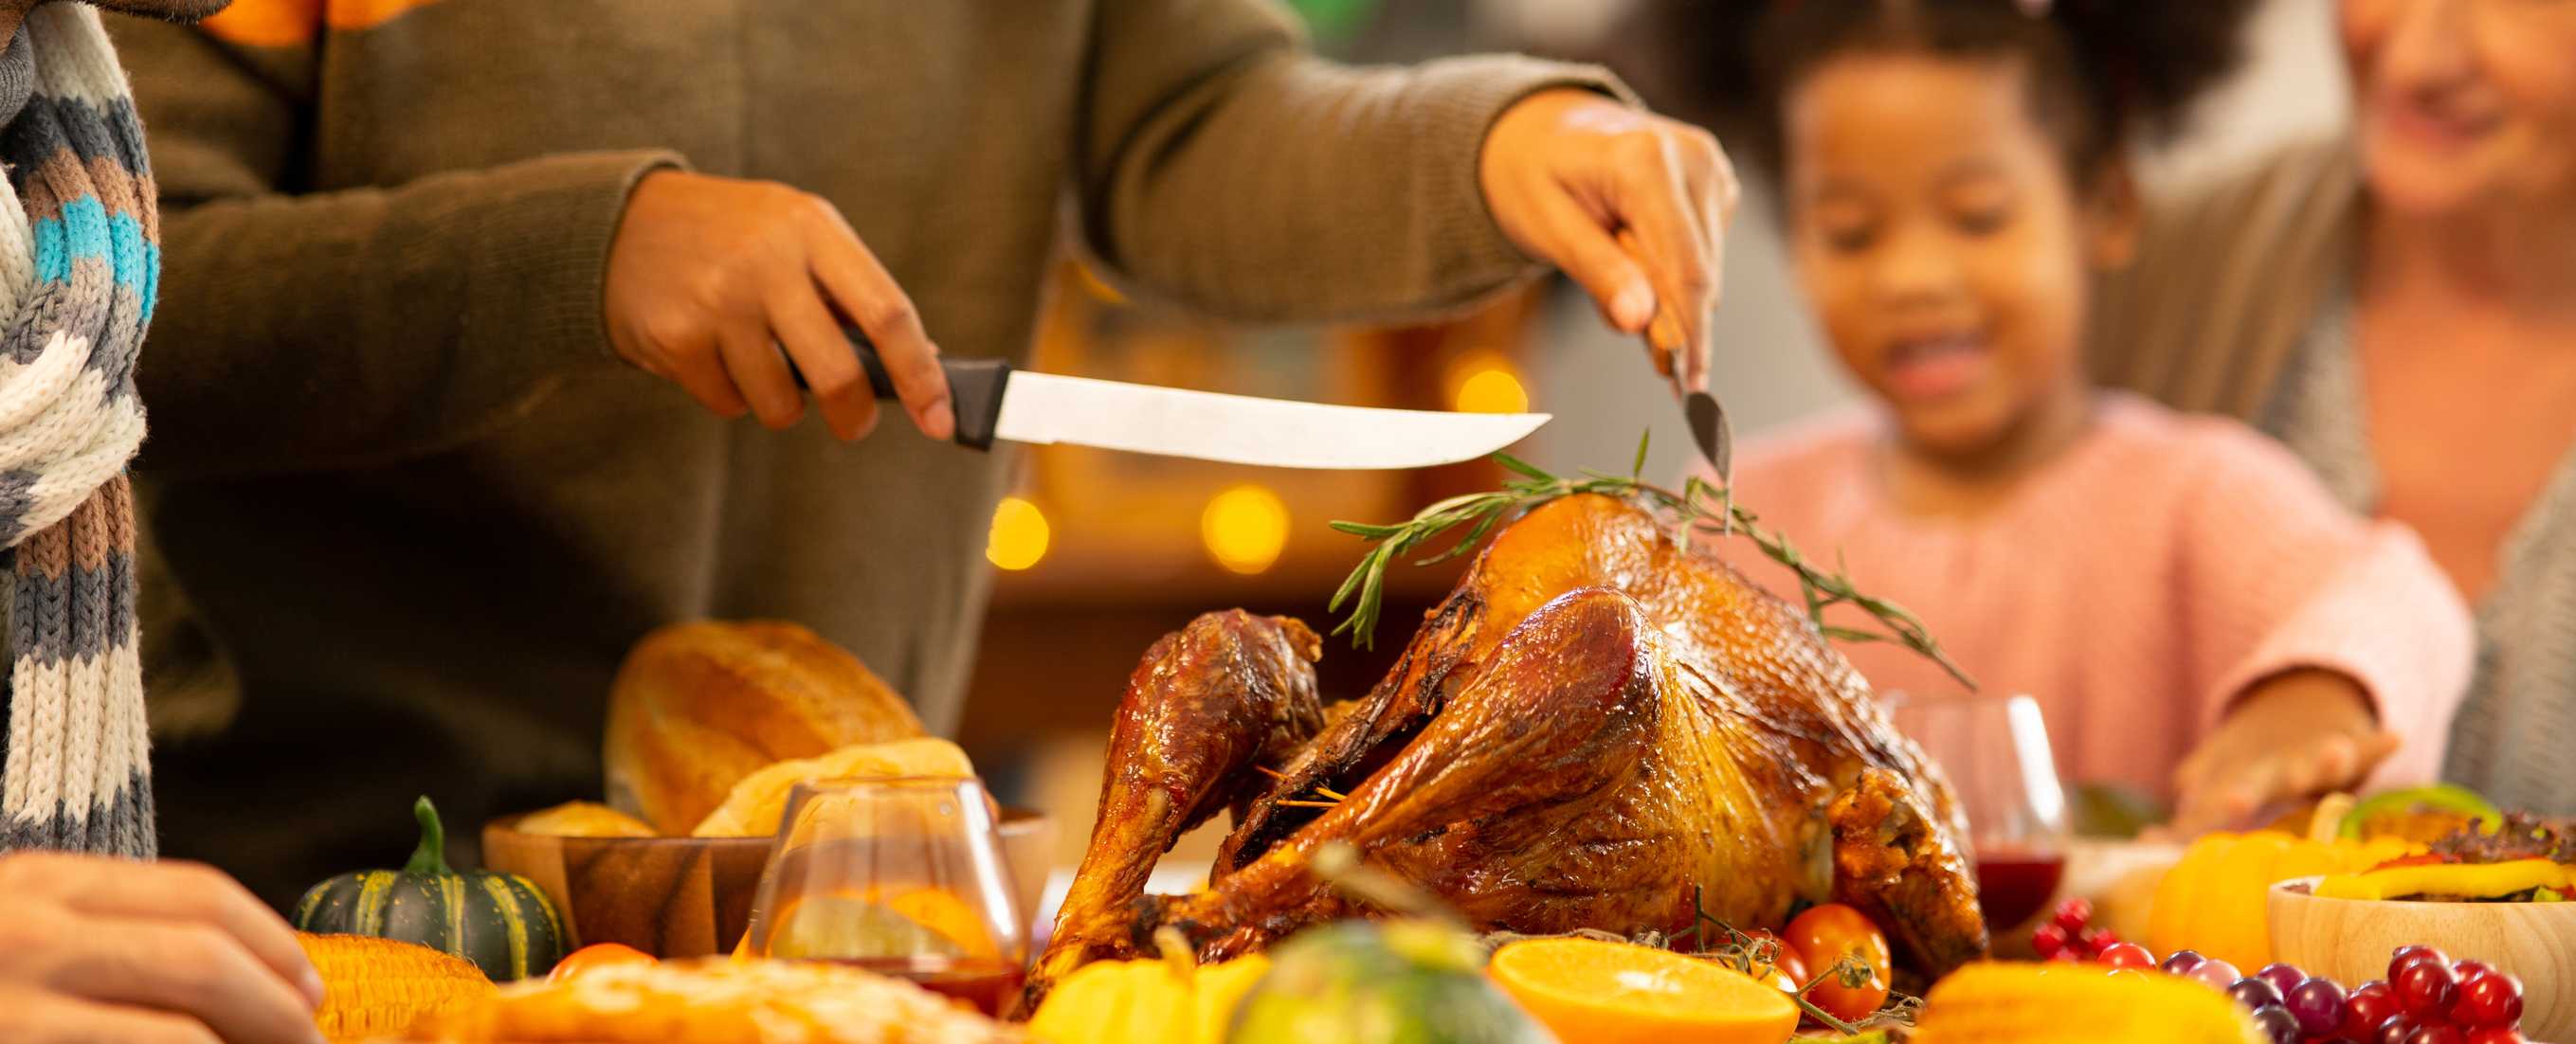 person cutting into thanksgiving turkey